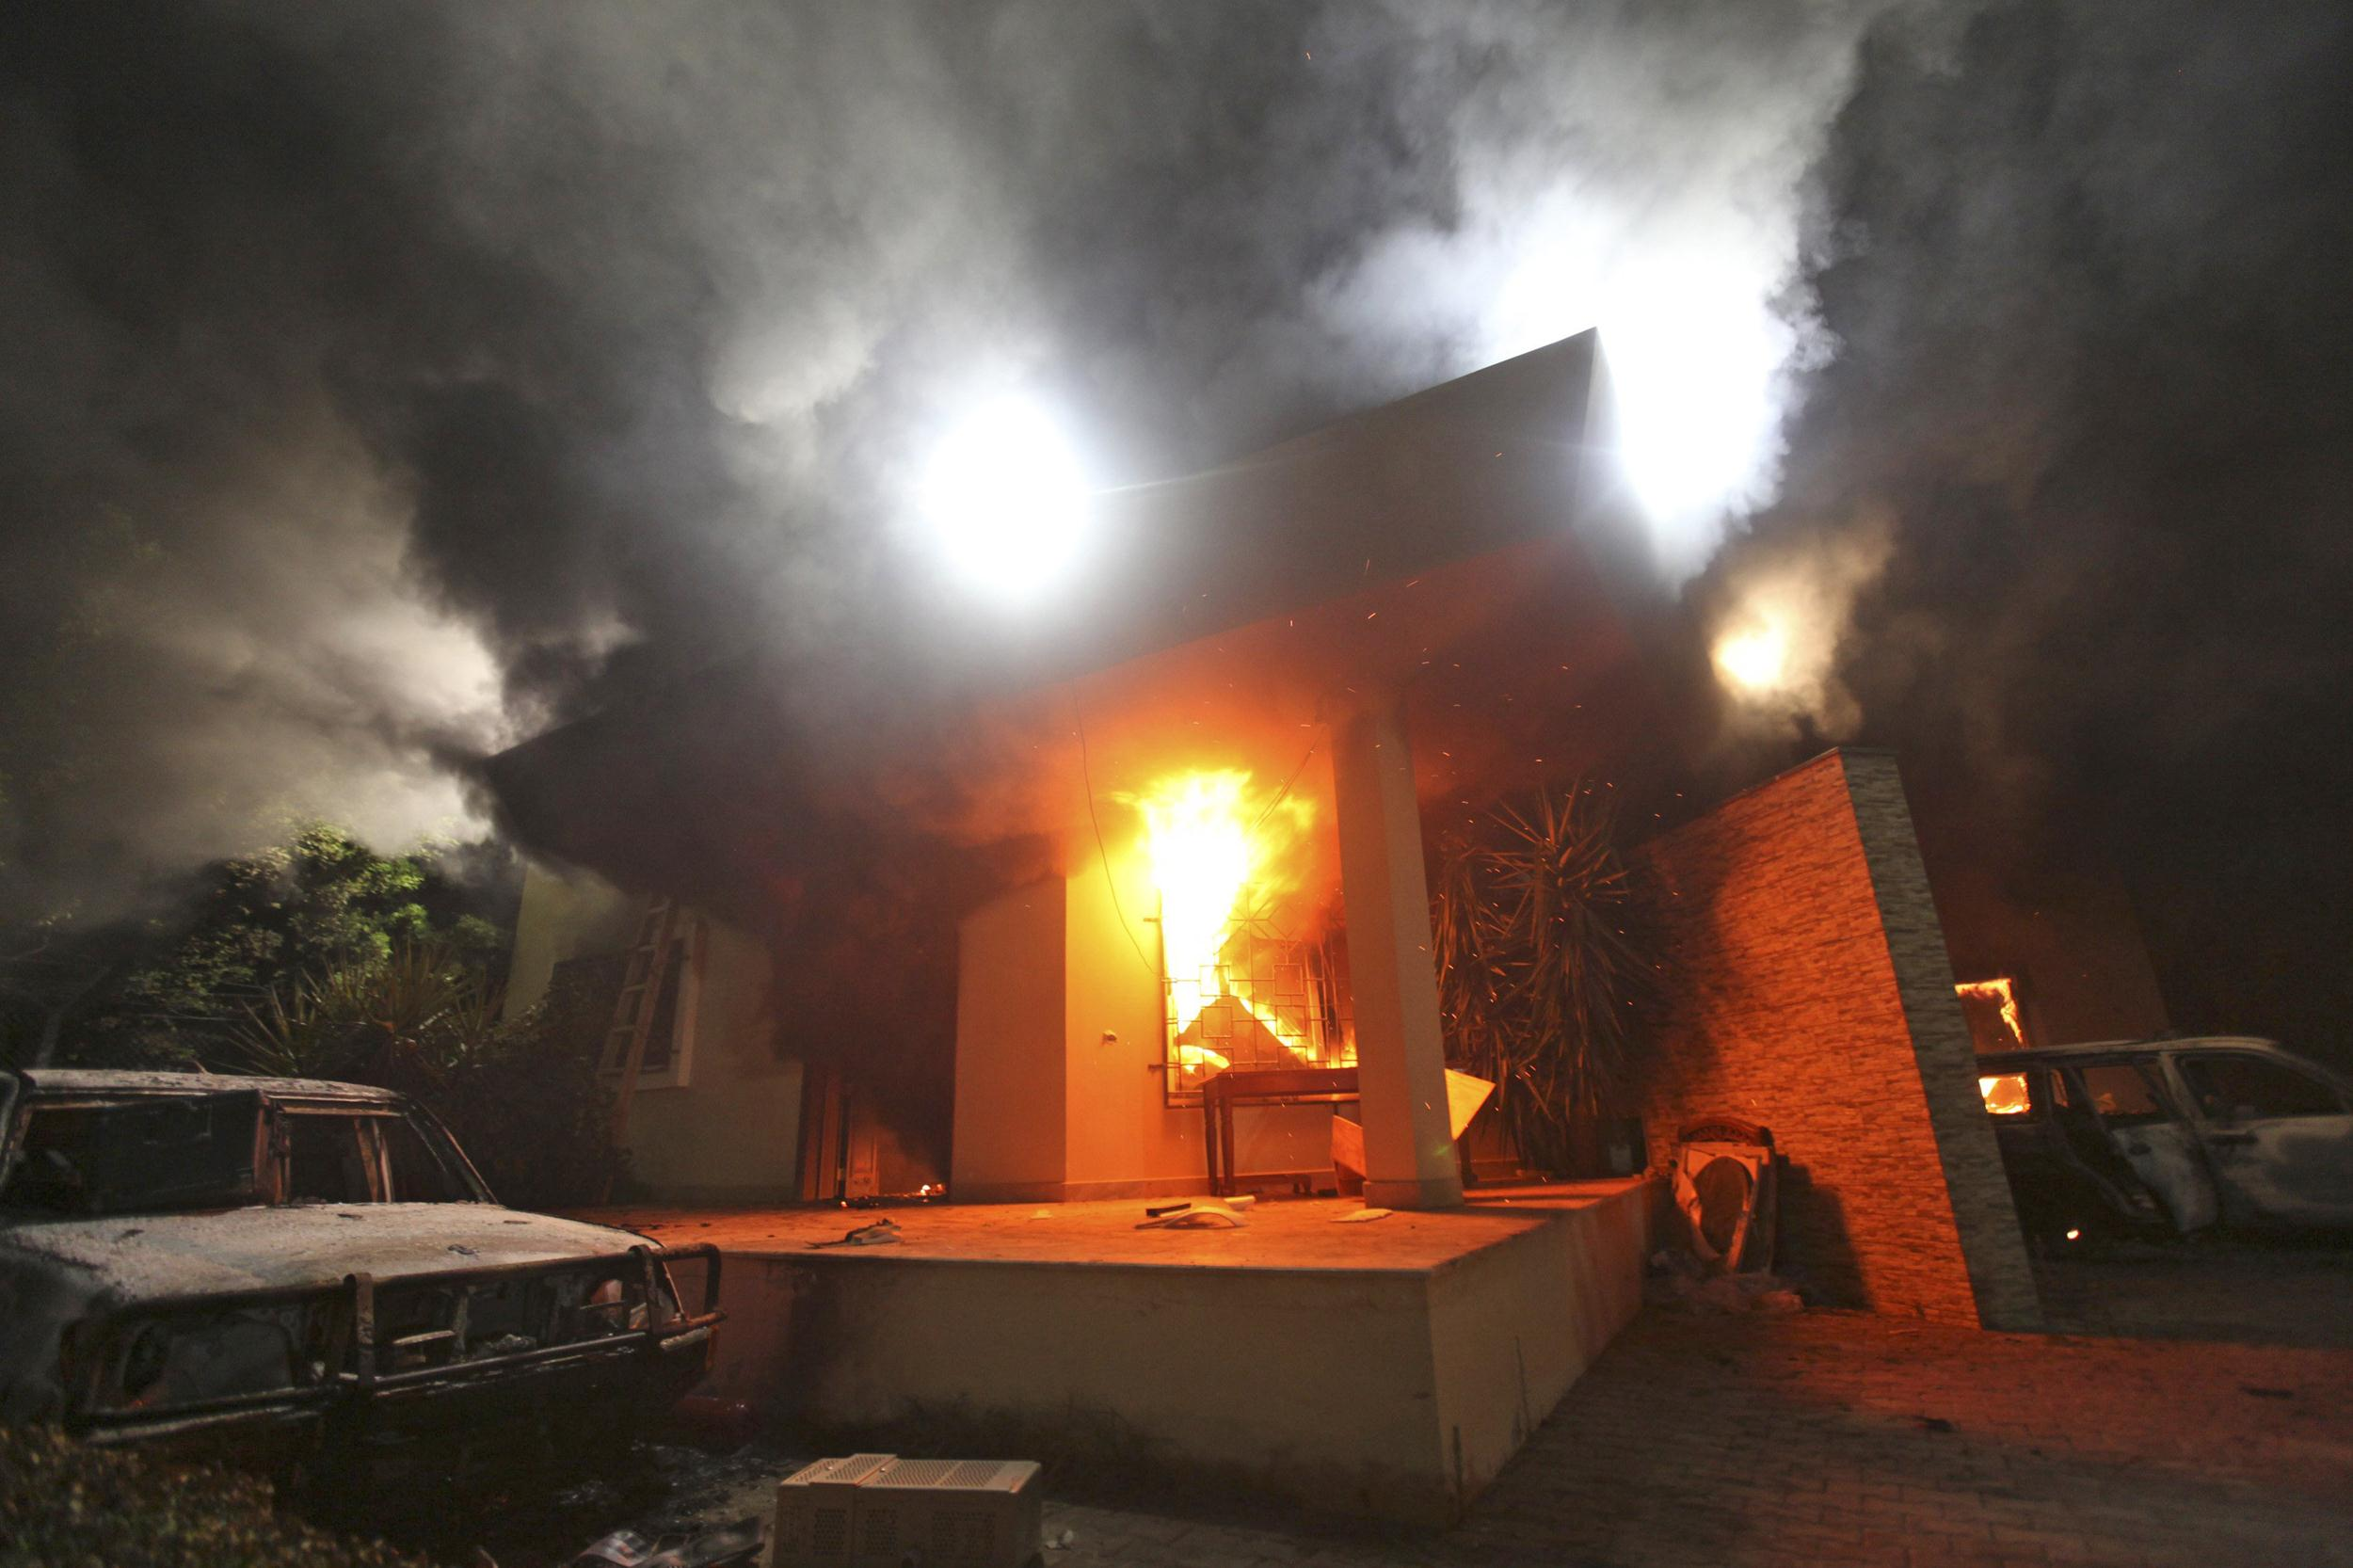 Image: Flames consume the U.S. Consulate in Benghazi in Sept. 11, 2012.